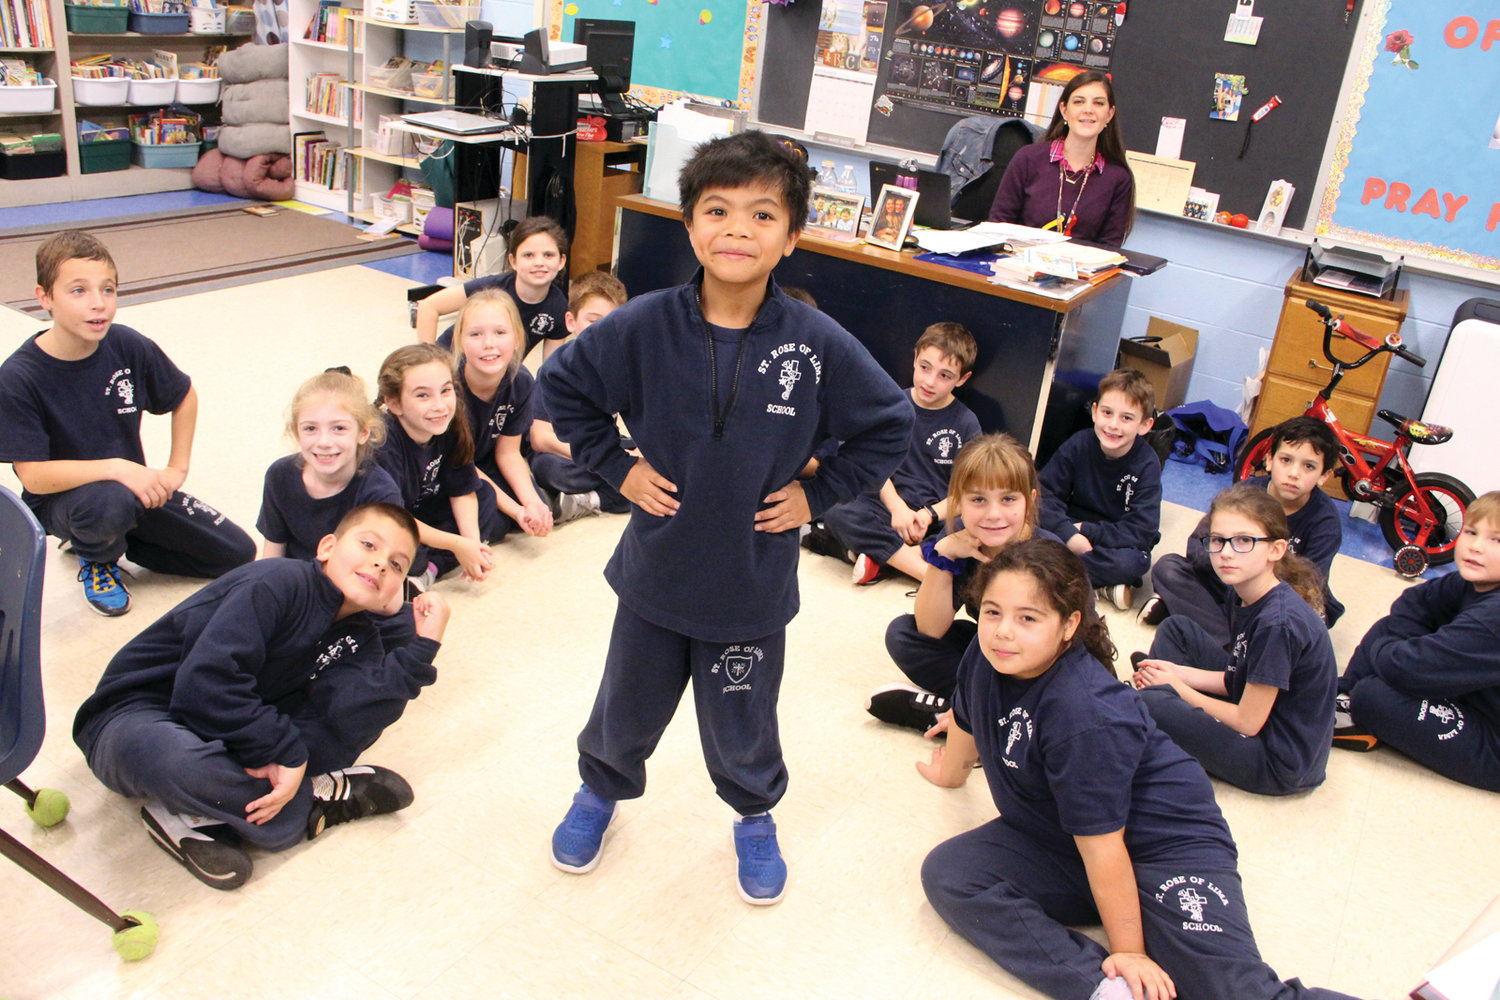 BIG ROLE FOR A 3rd GRADER: Honesto Aguinaldo takes center stage in front of his classmates at St. Rose of Lima School. He is playing the role of Tiny Tim in Trinity Rep's production of A Christmas Carol.